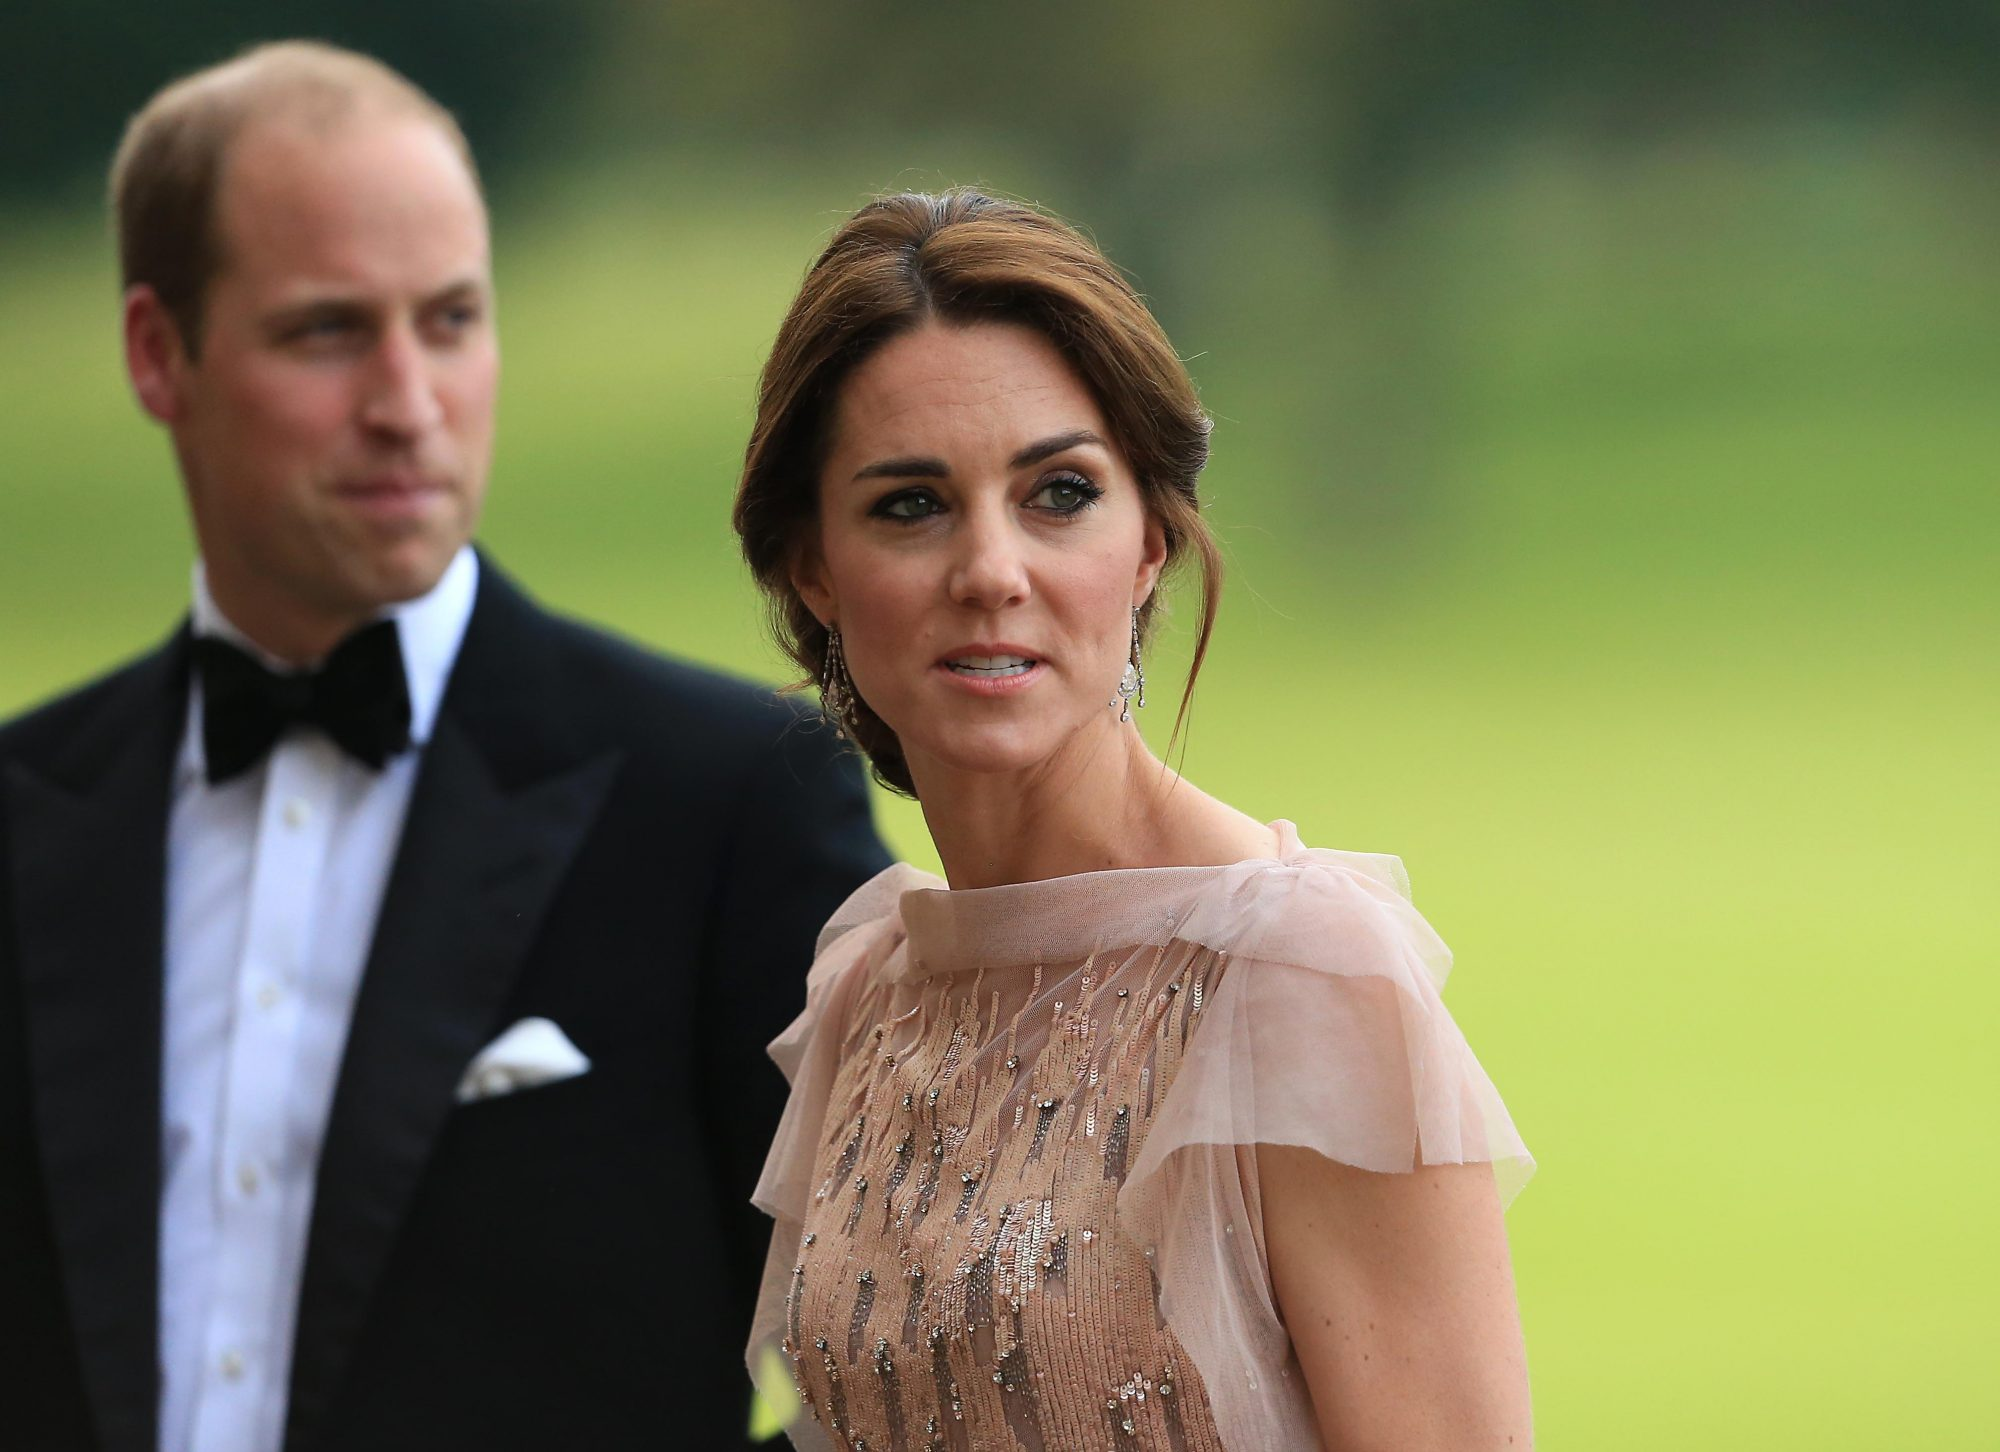 Kate Middleton, Principe Willam